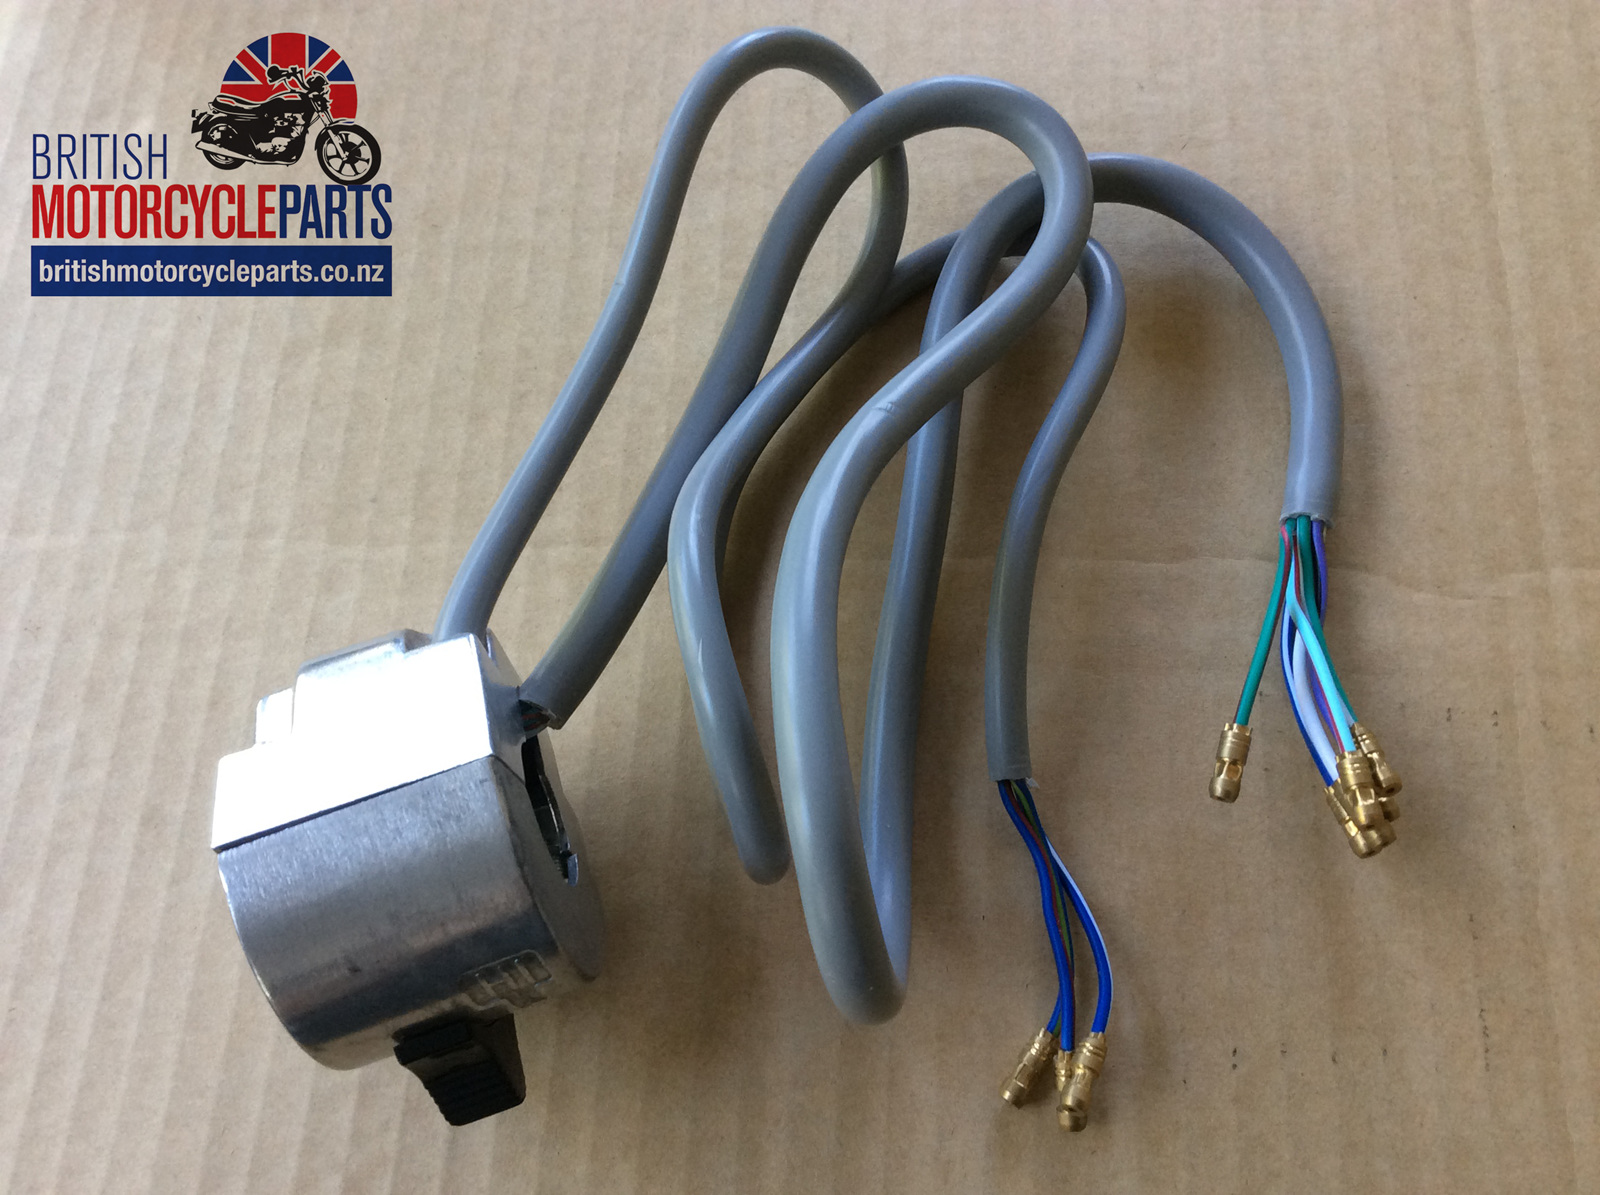 19 1965 30447 60 4586 30707 Triumph T140 T160 Lh Switch Gear 1975 78 How To Wire A Power Nz